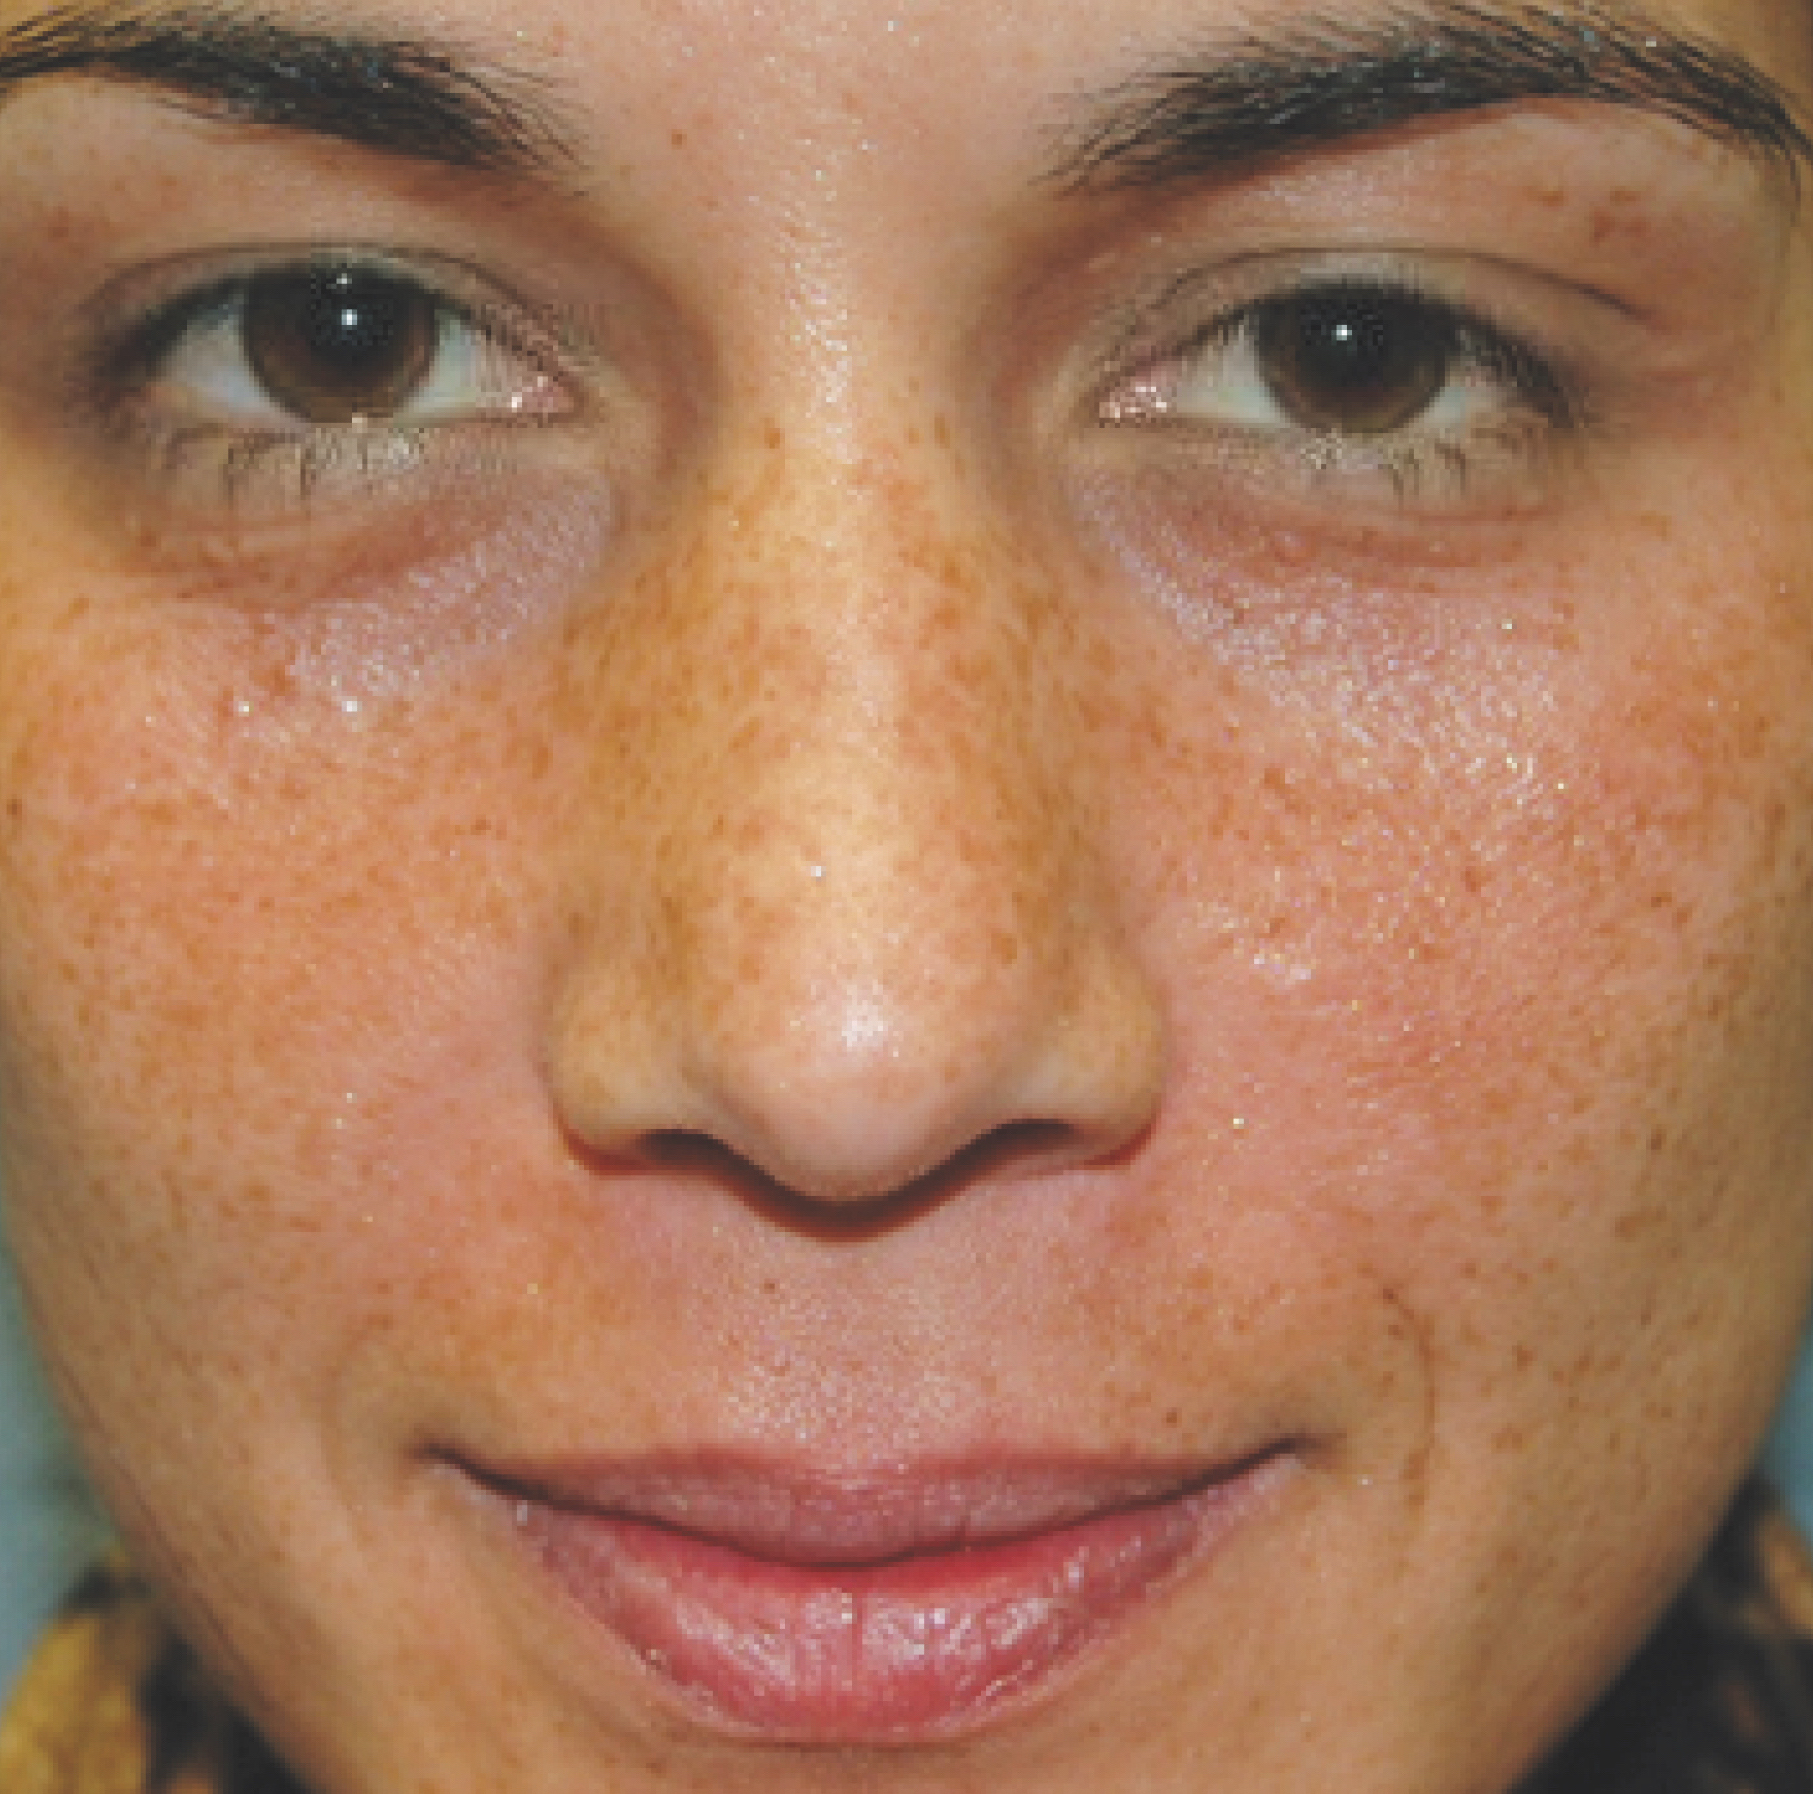 Pigmentation-Volleyball-player copy 2 BEFORE.jpg